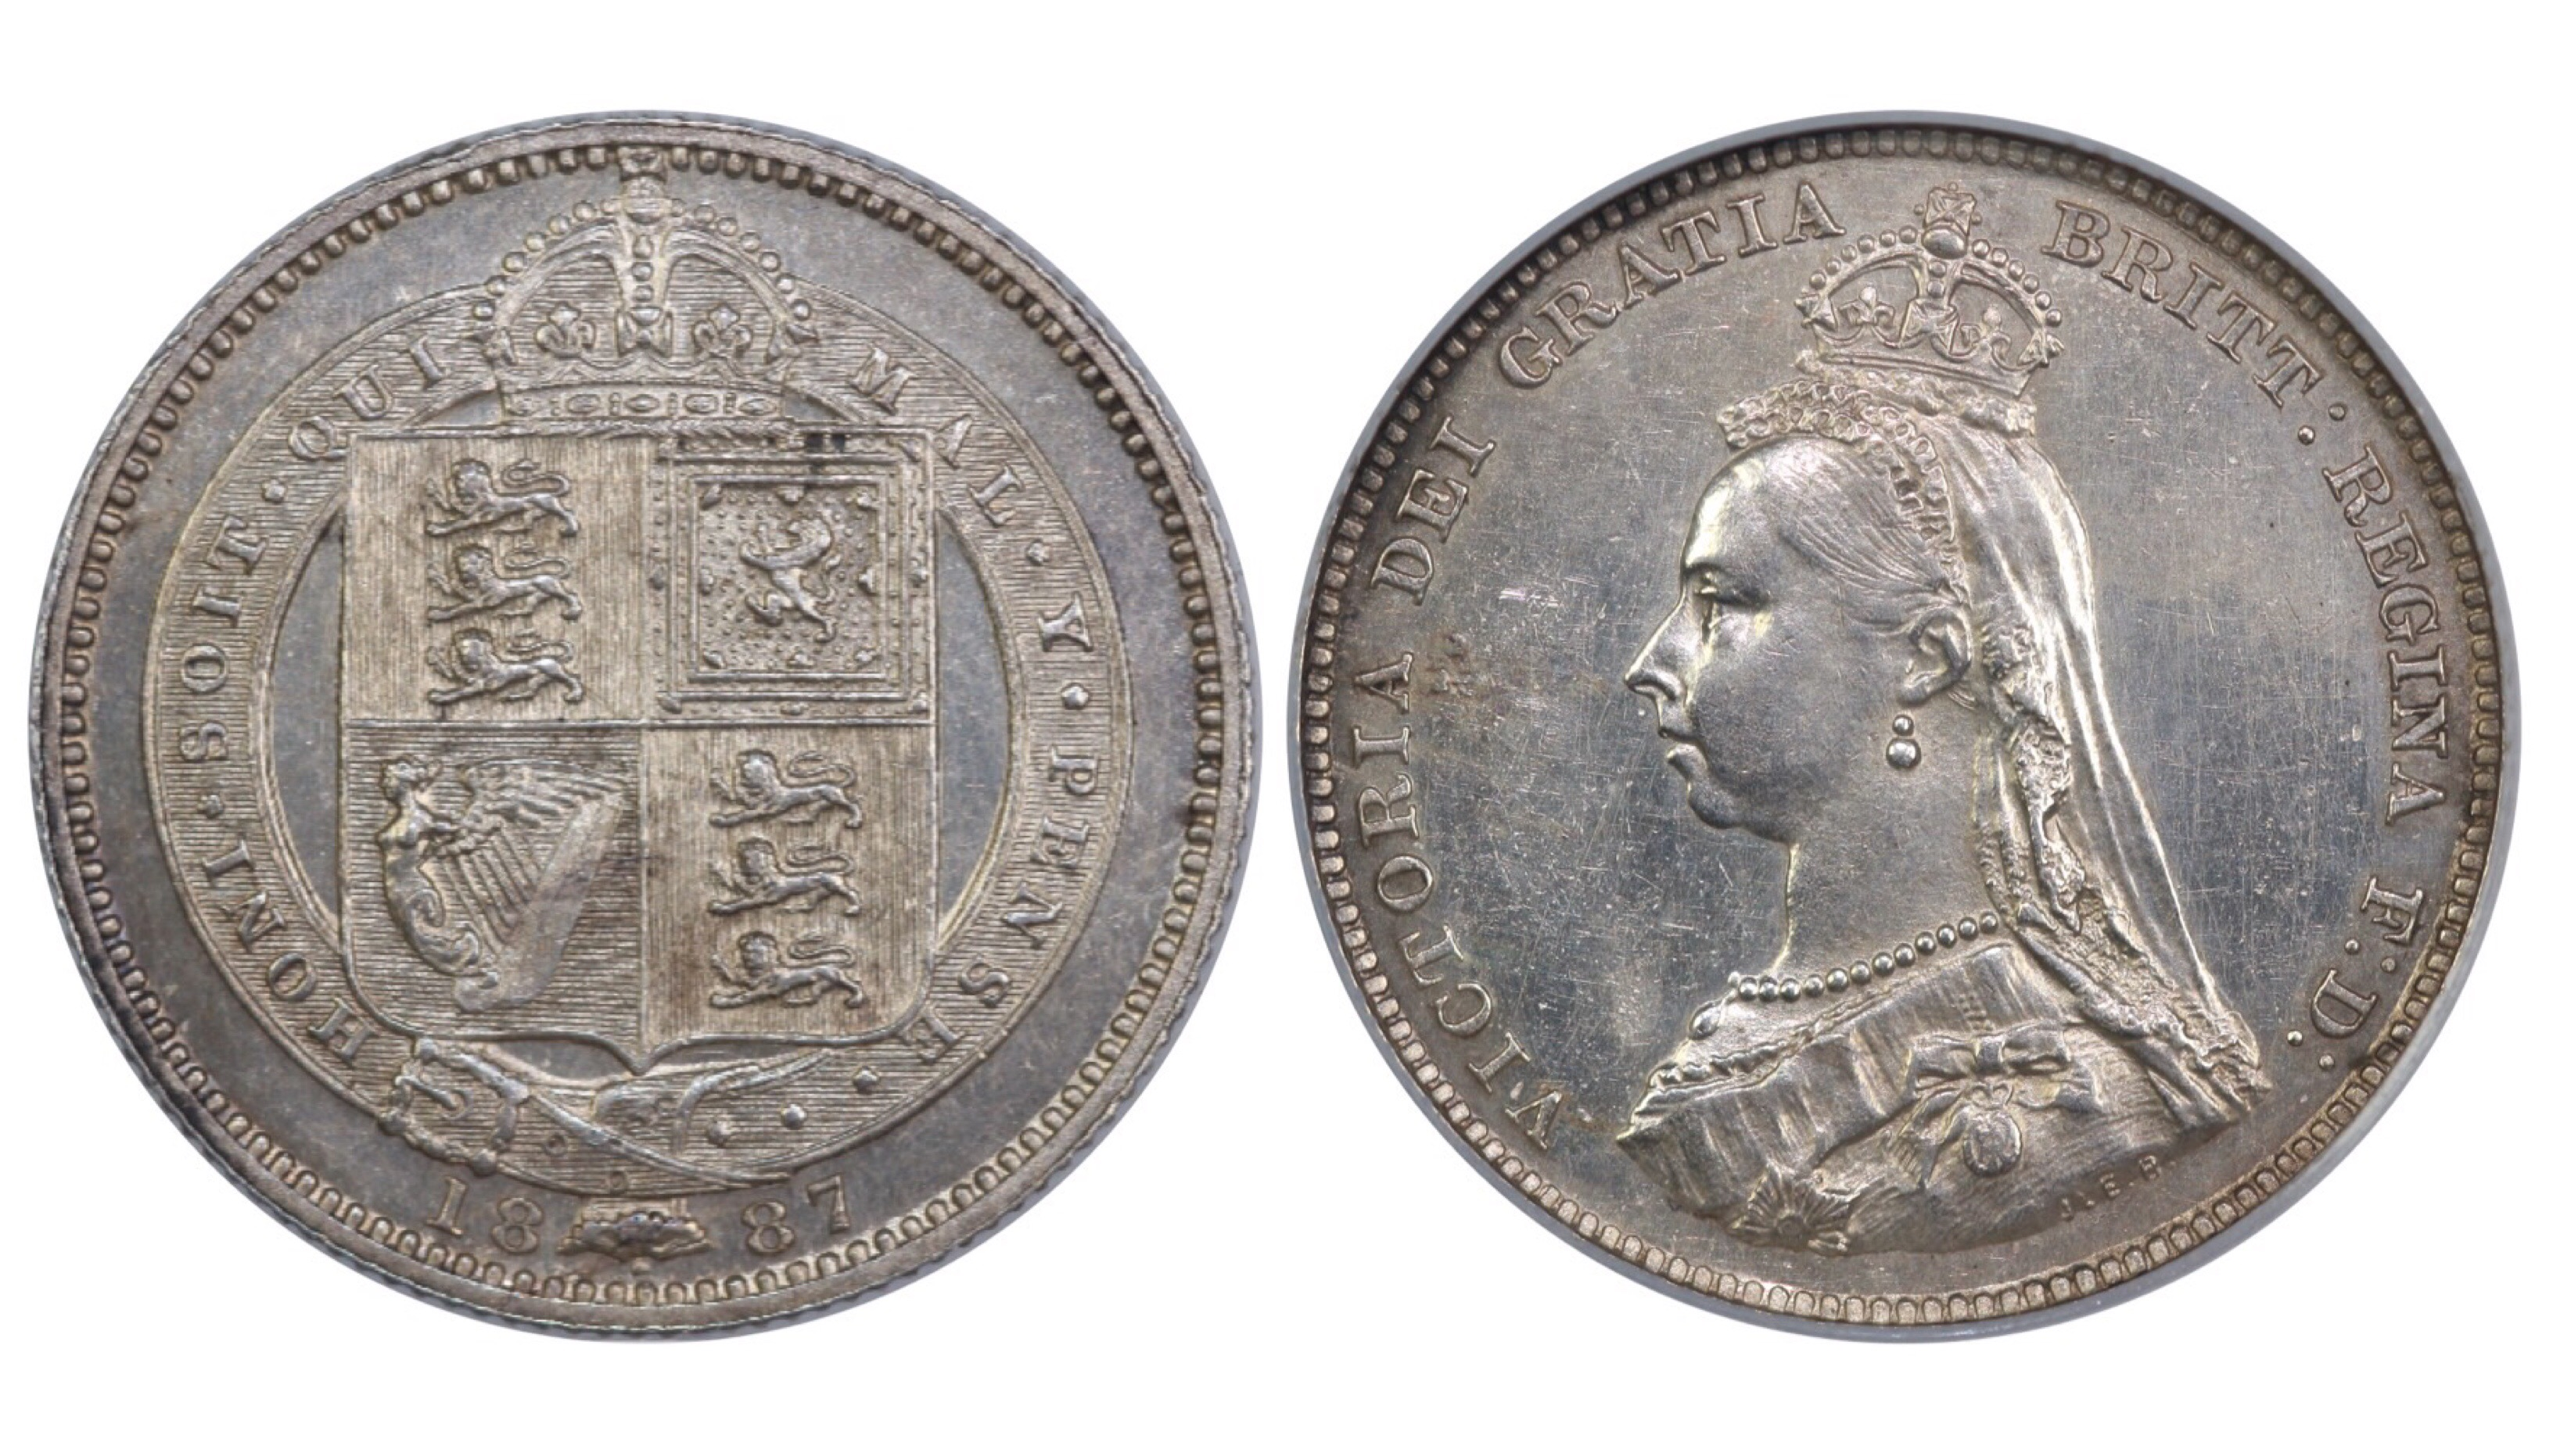 1887 Shilling, CGS 65, Victoria, Dies 1A, Davies 980, UIN 8158